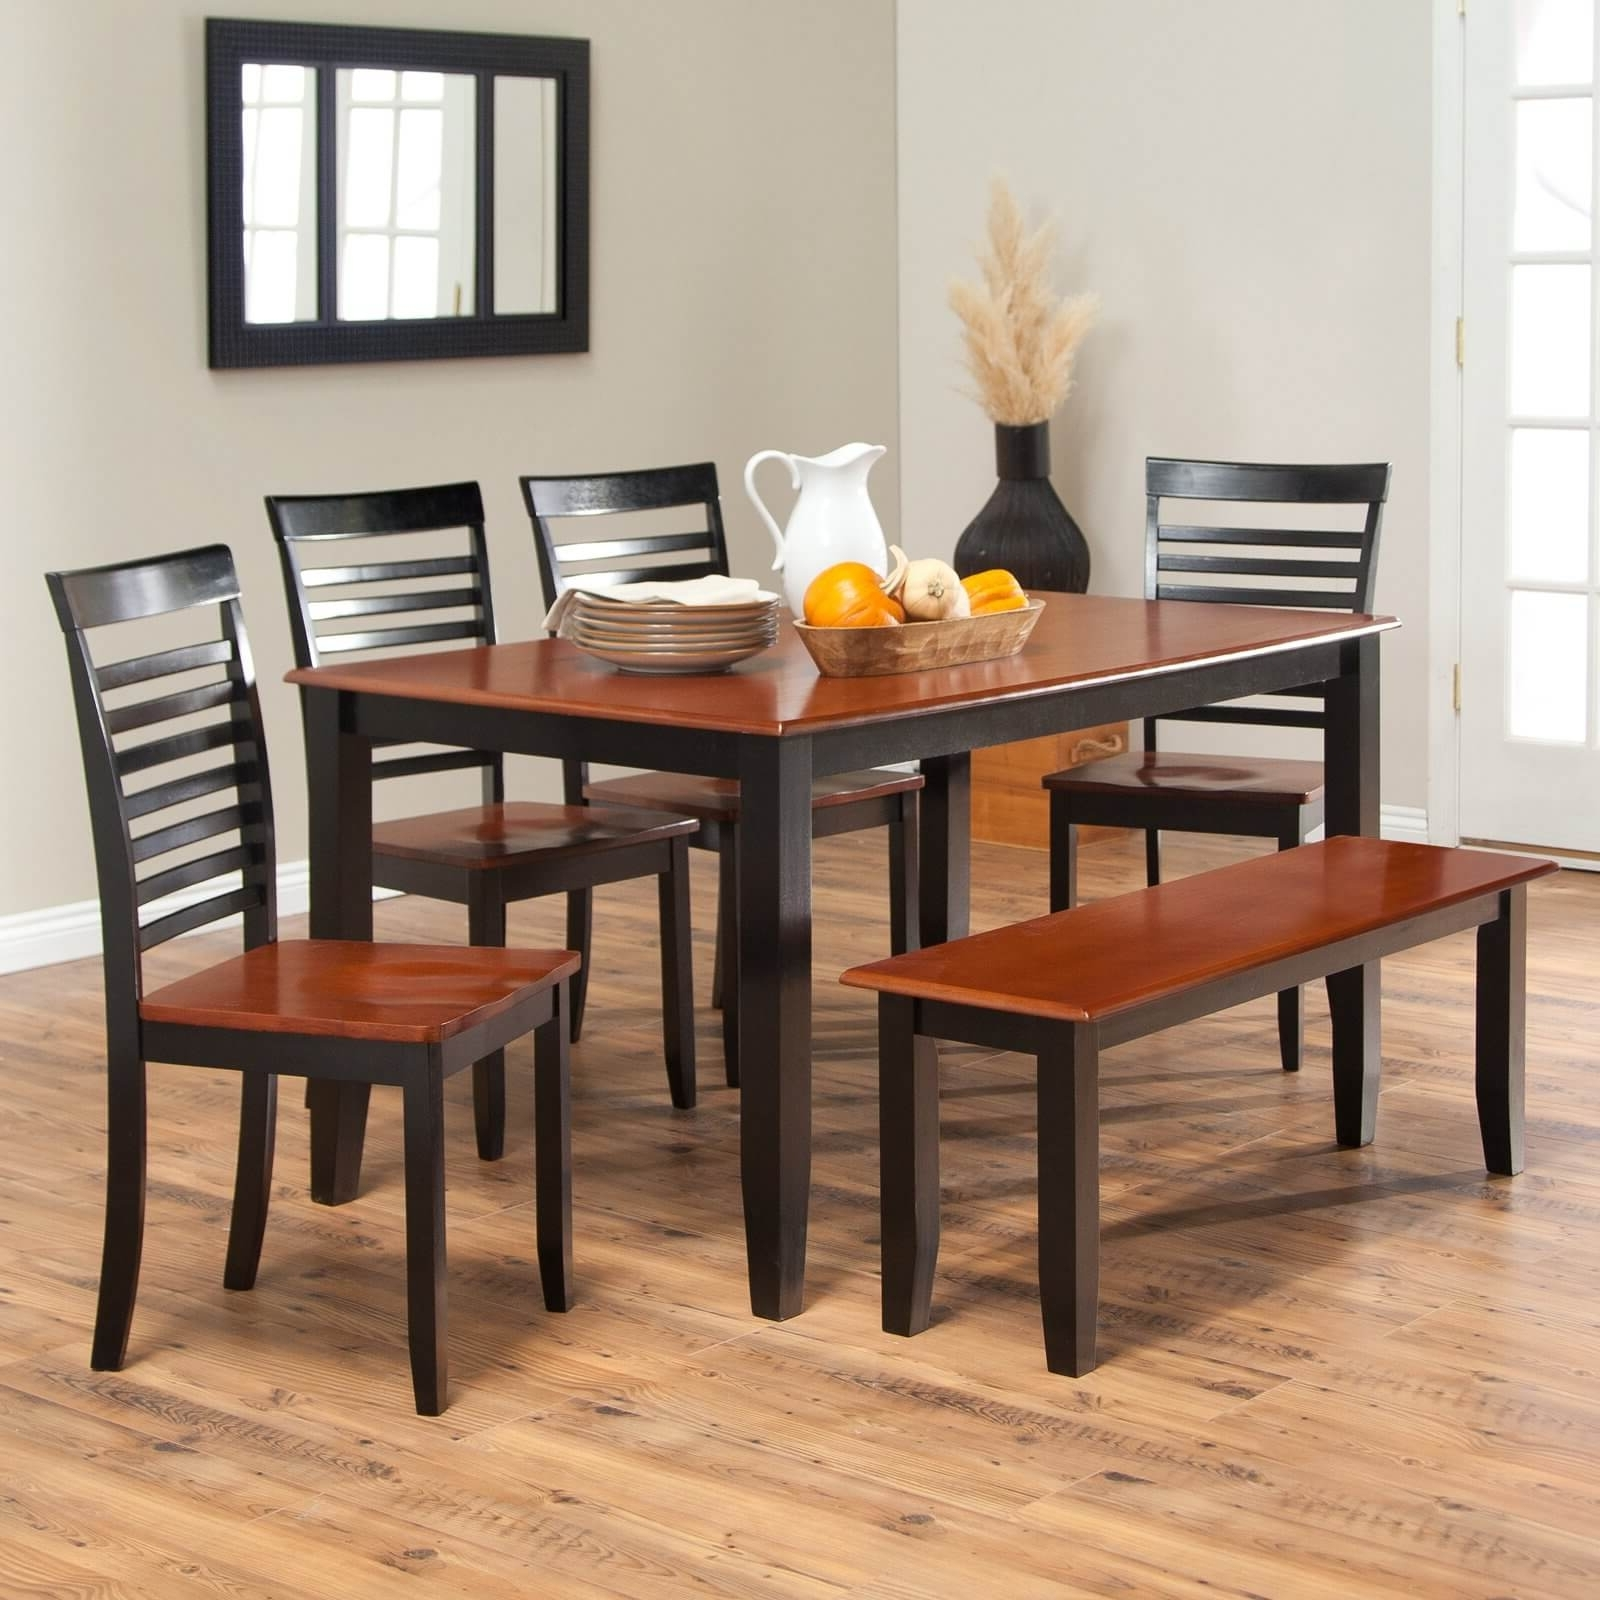 26 Dining Room Sets (Big And Small) With Bench Seating (2018) Inside Most Current Compact Dining Tables And Chairs (Gallery 18 of 25)